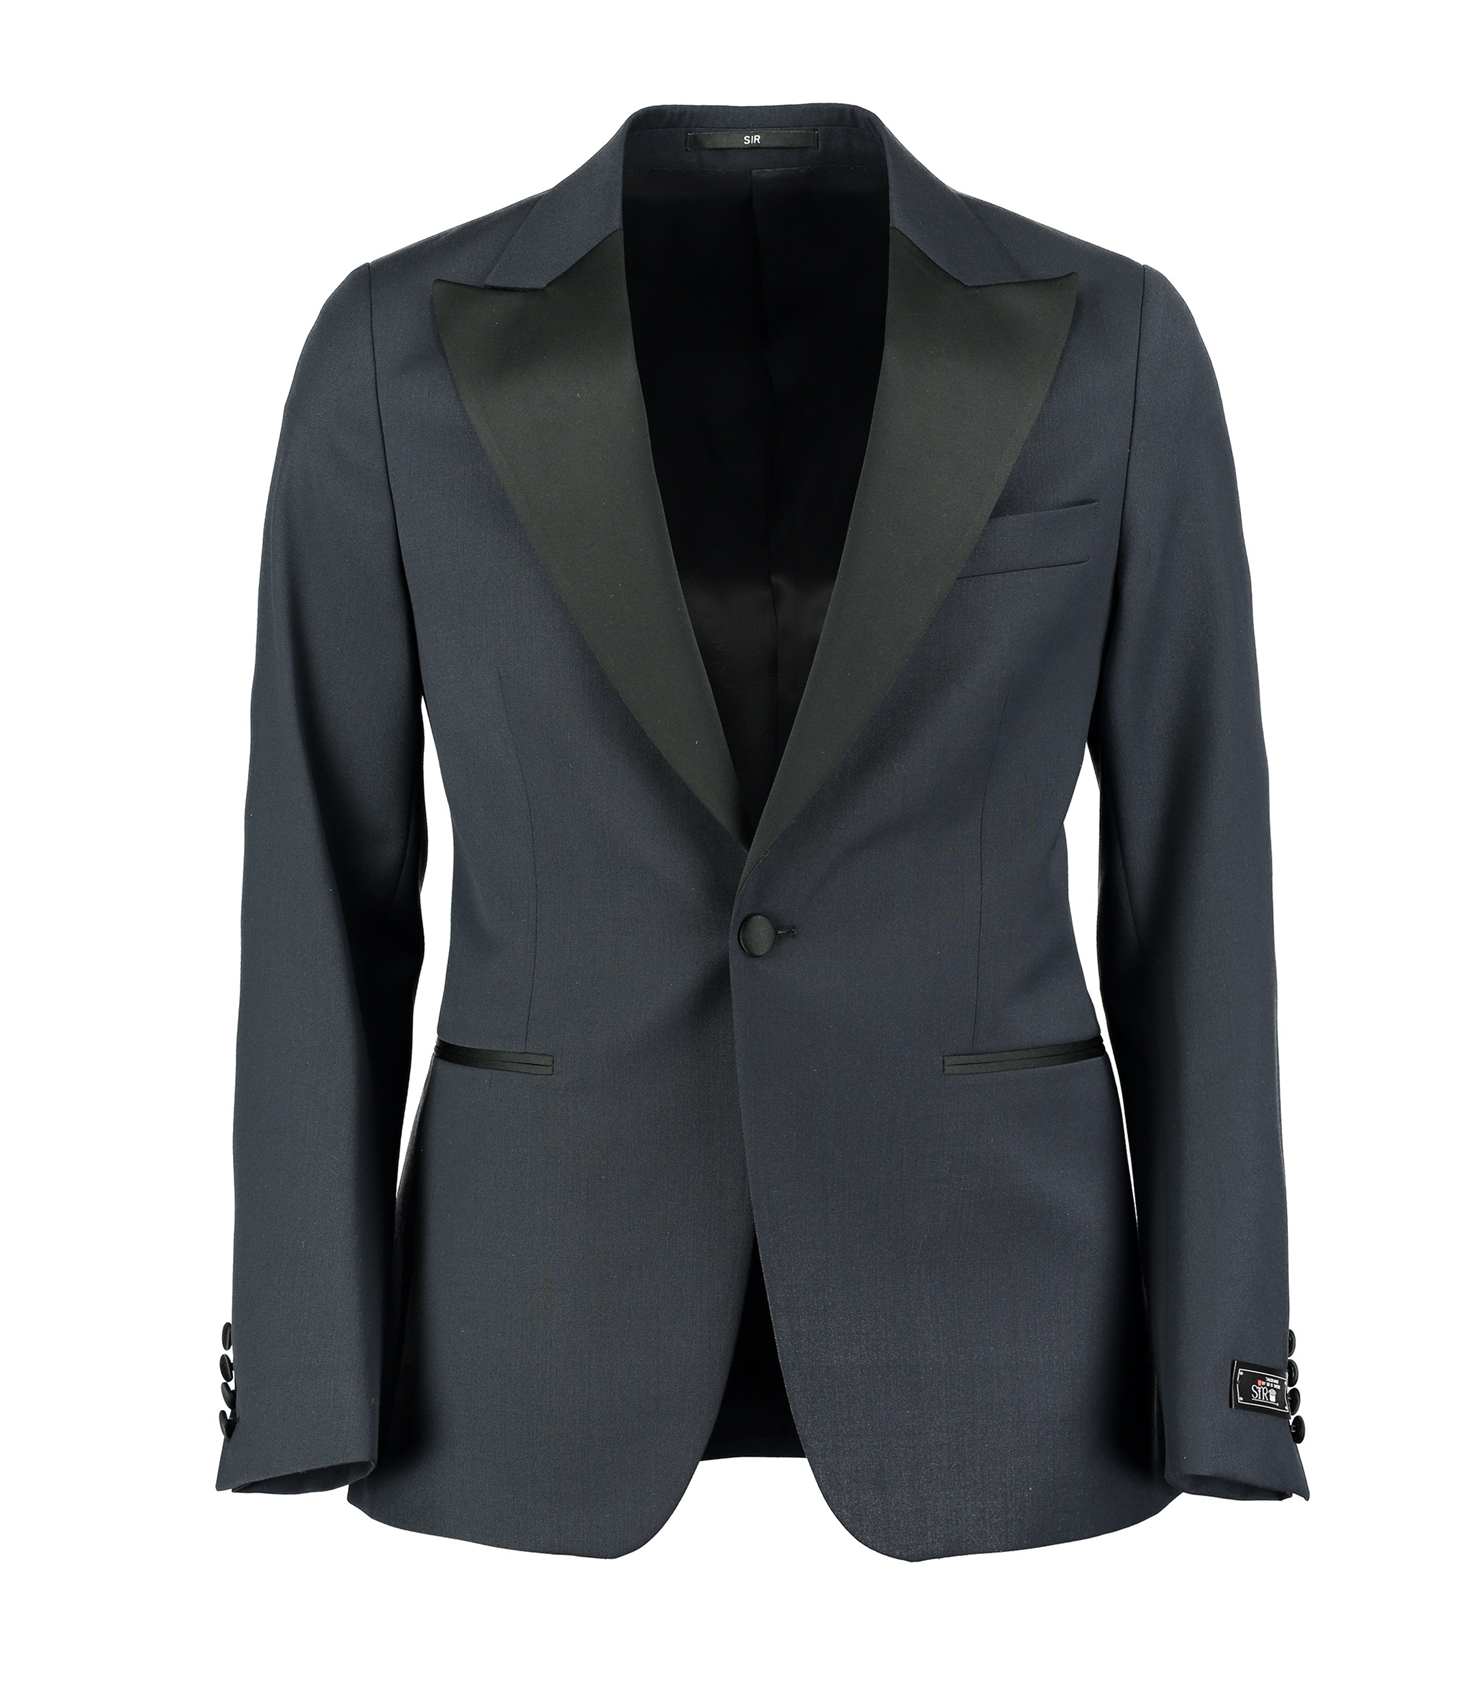 sir-of-sweden-connery-tuxedo-jacket-navy-blue